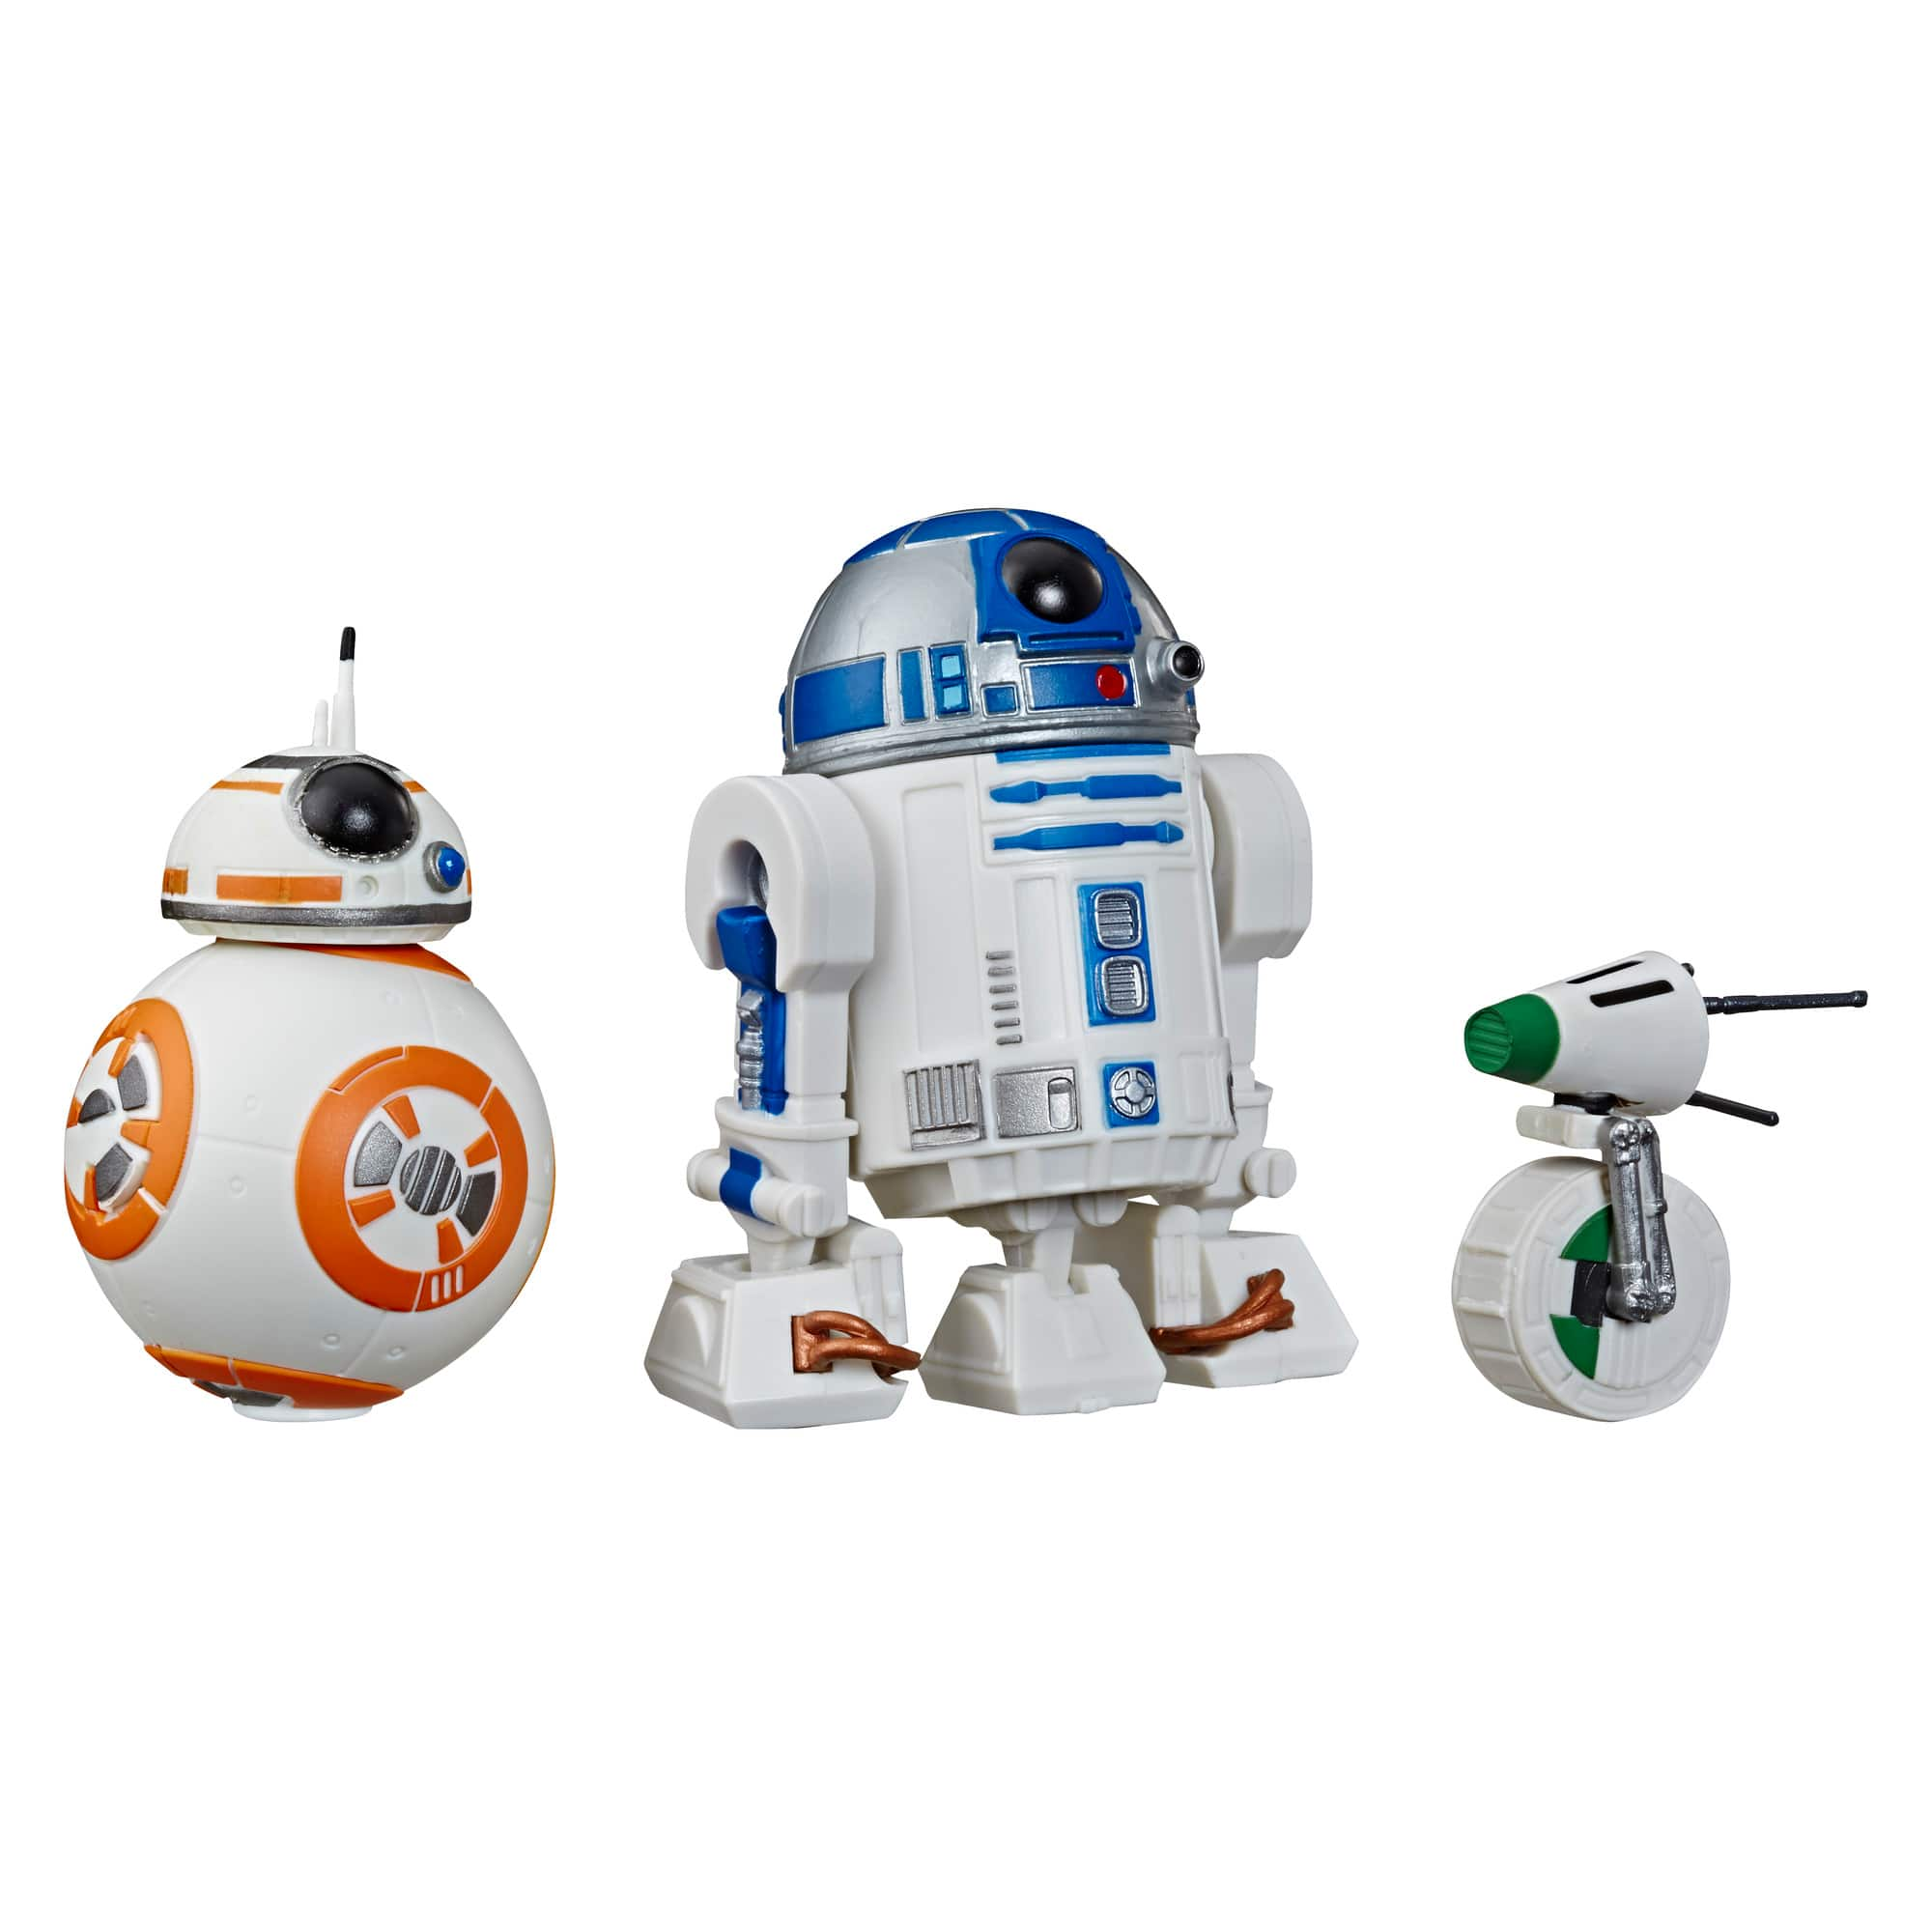 Star Wars Galaxy of Adventures R2-D2, BB-8, D-O 3-pack Toy Droid Figures: $7.50 + Free Store Pickup